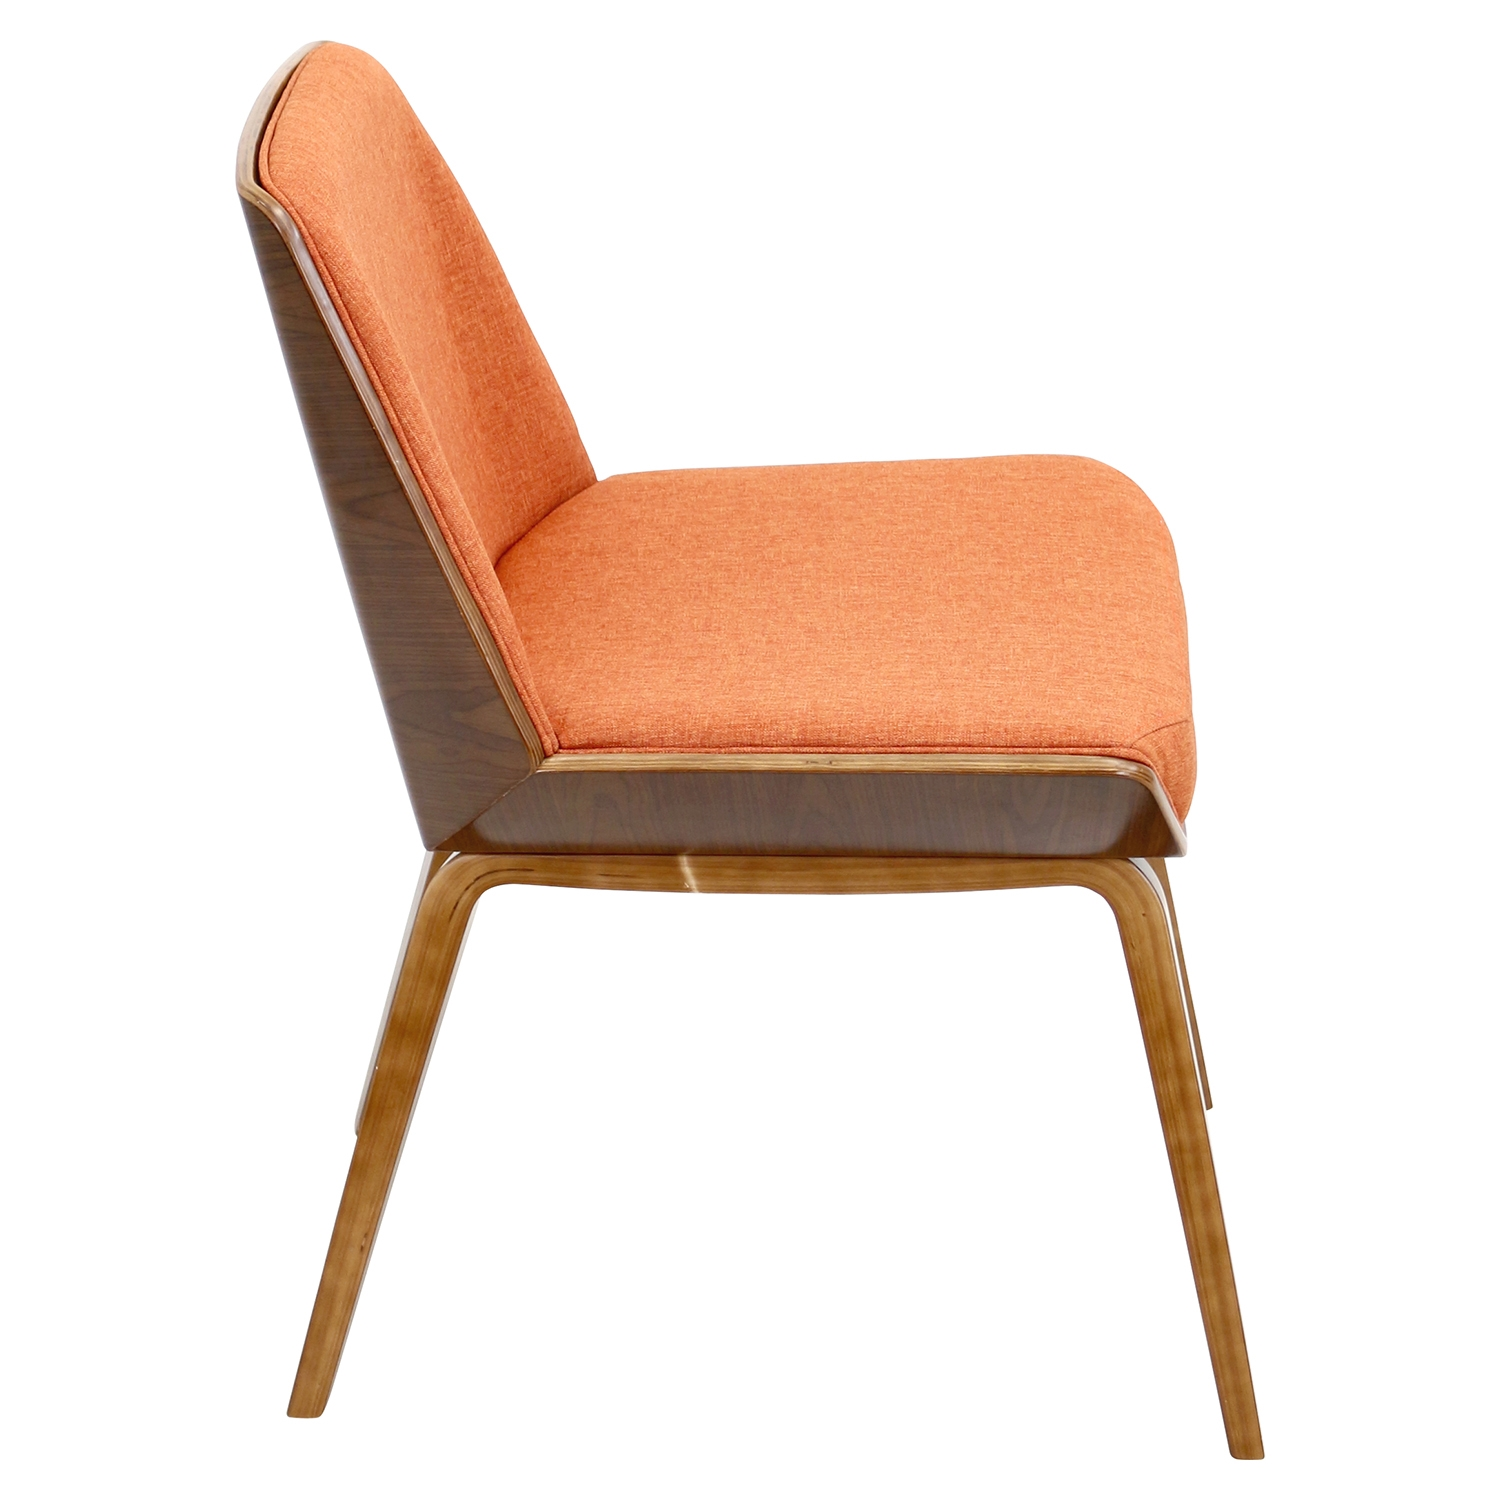 Corazza Dining Chair - Orange - LMS-CH-CRZZ-WL-O